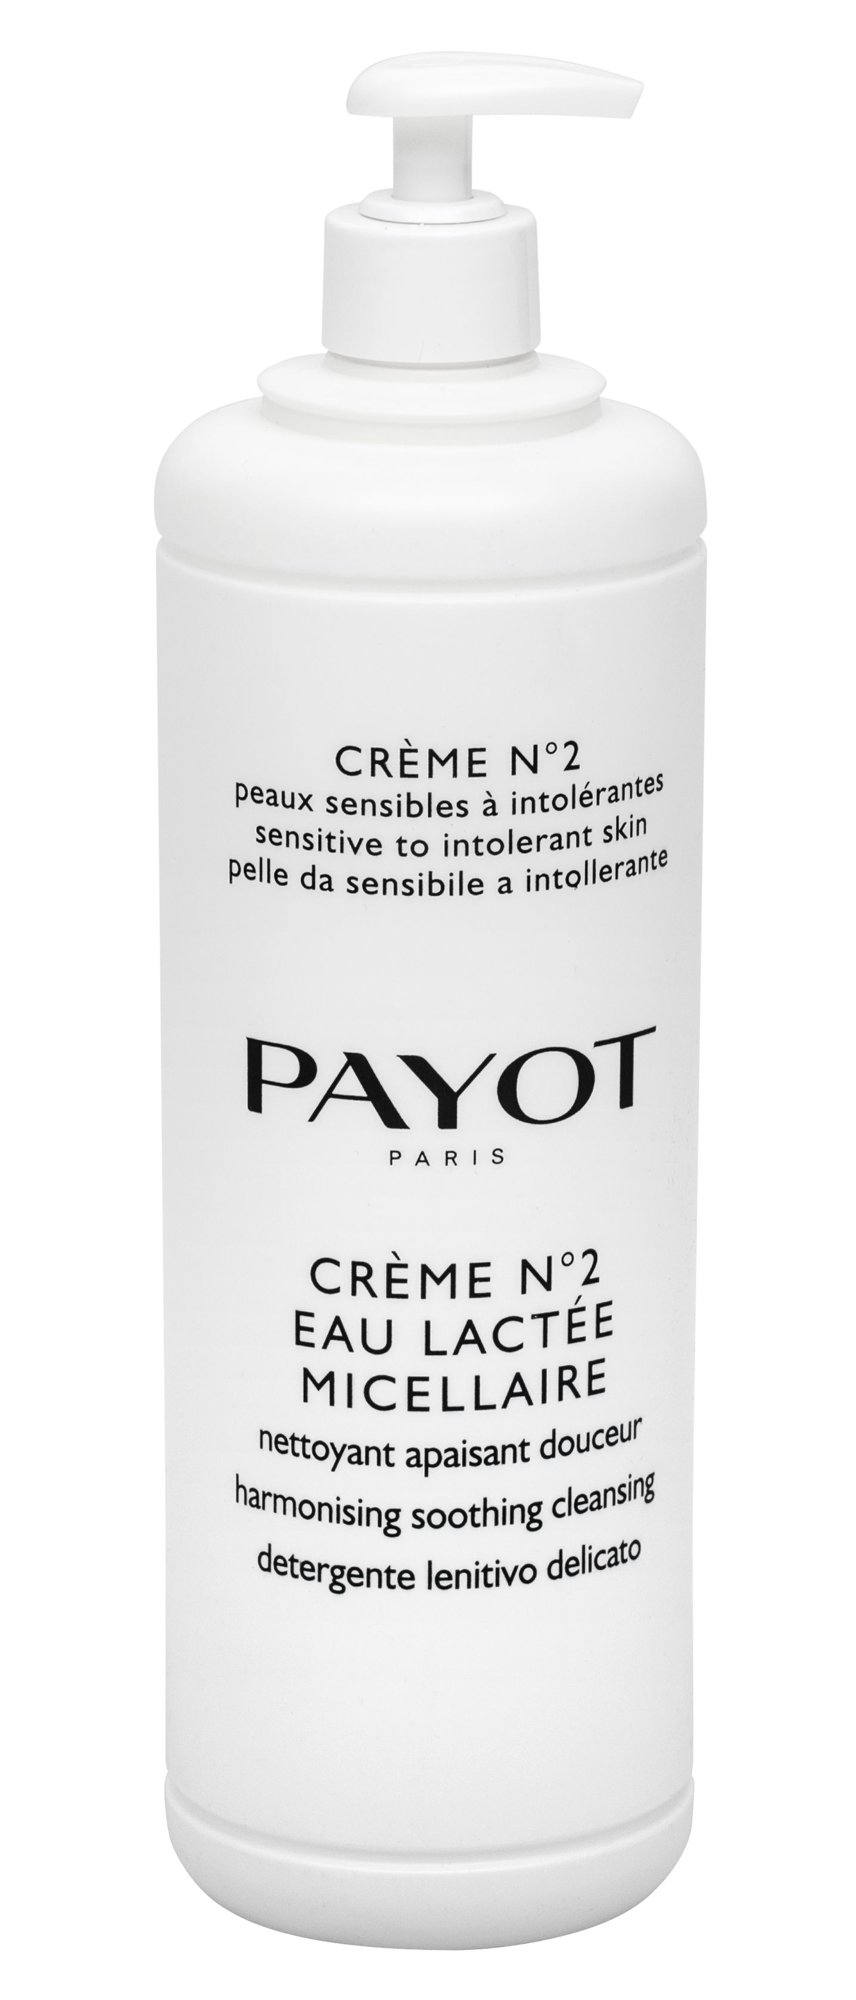 PAYOT Creme No2 Cleansing Milk 1000ml